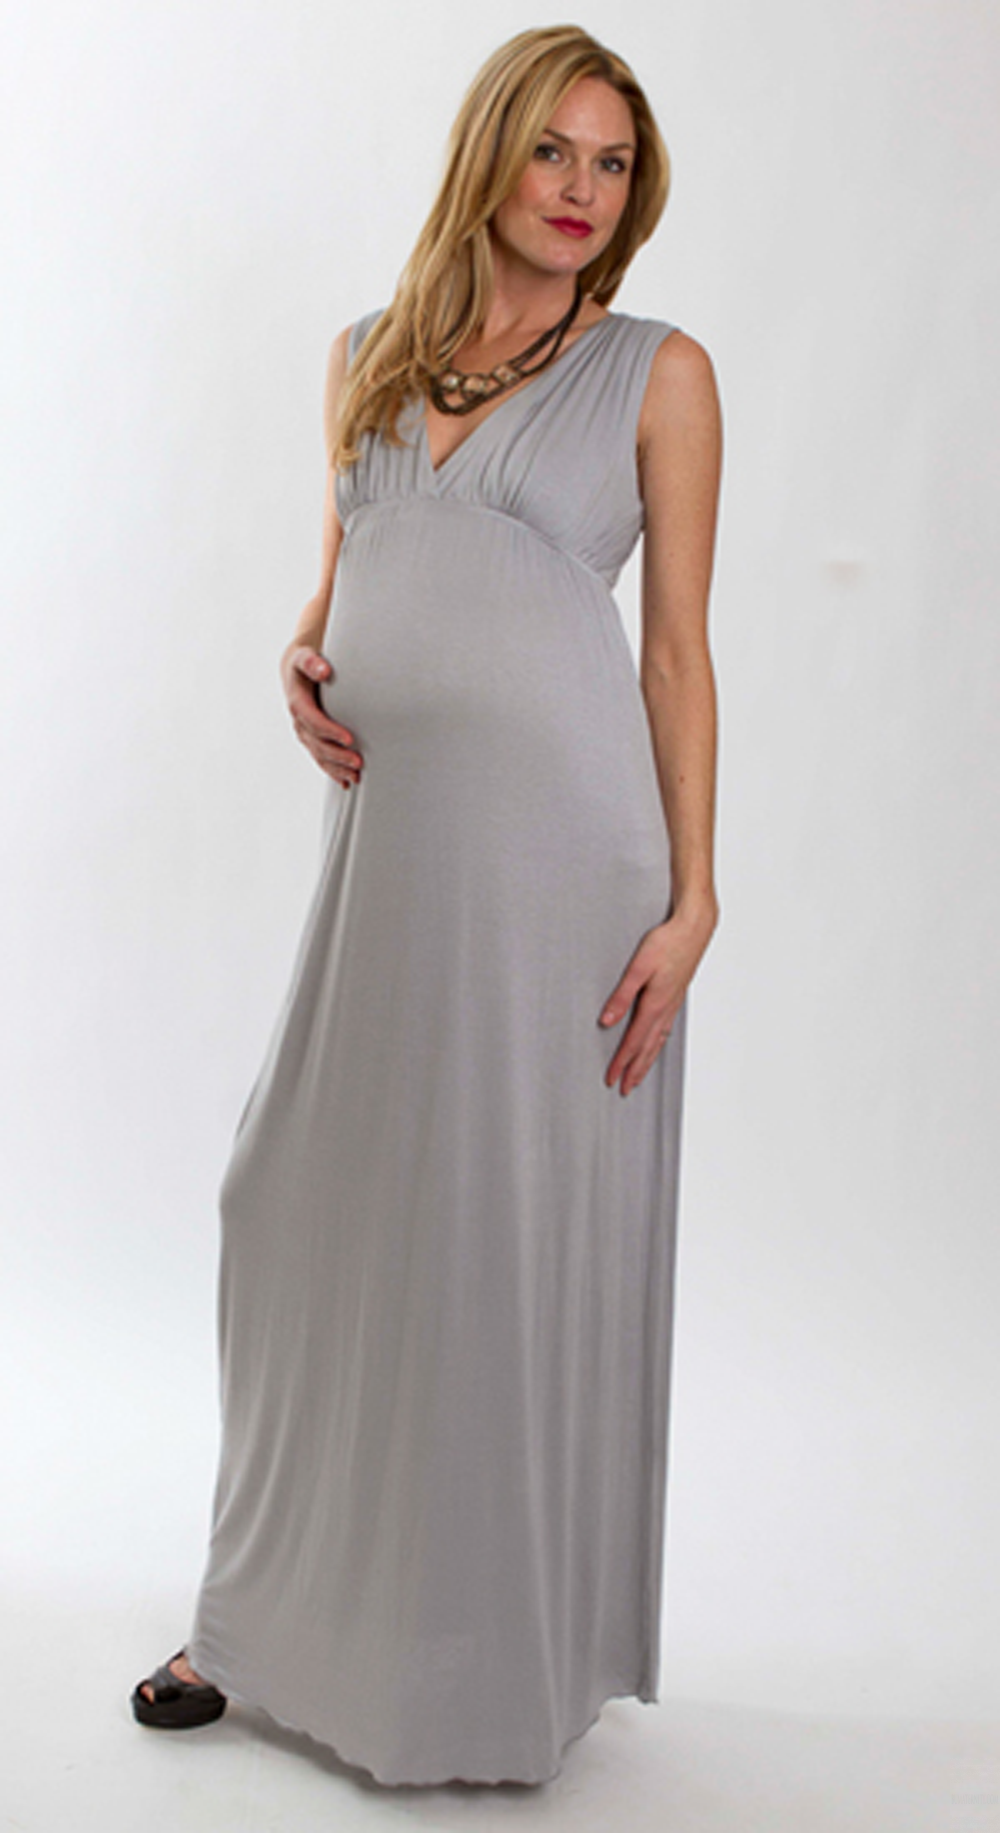 Maternity Dresses for Weddings Special Occasions - Dresses for ...